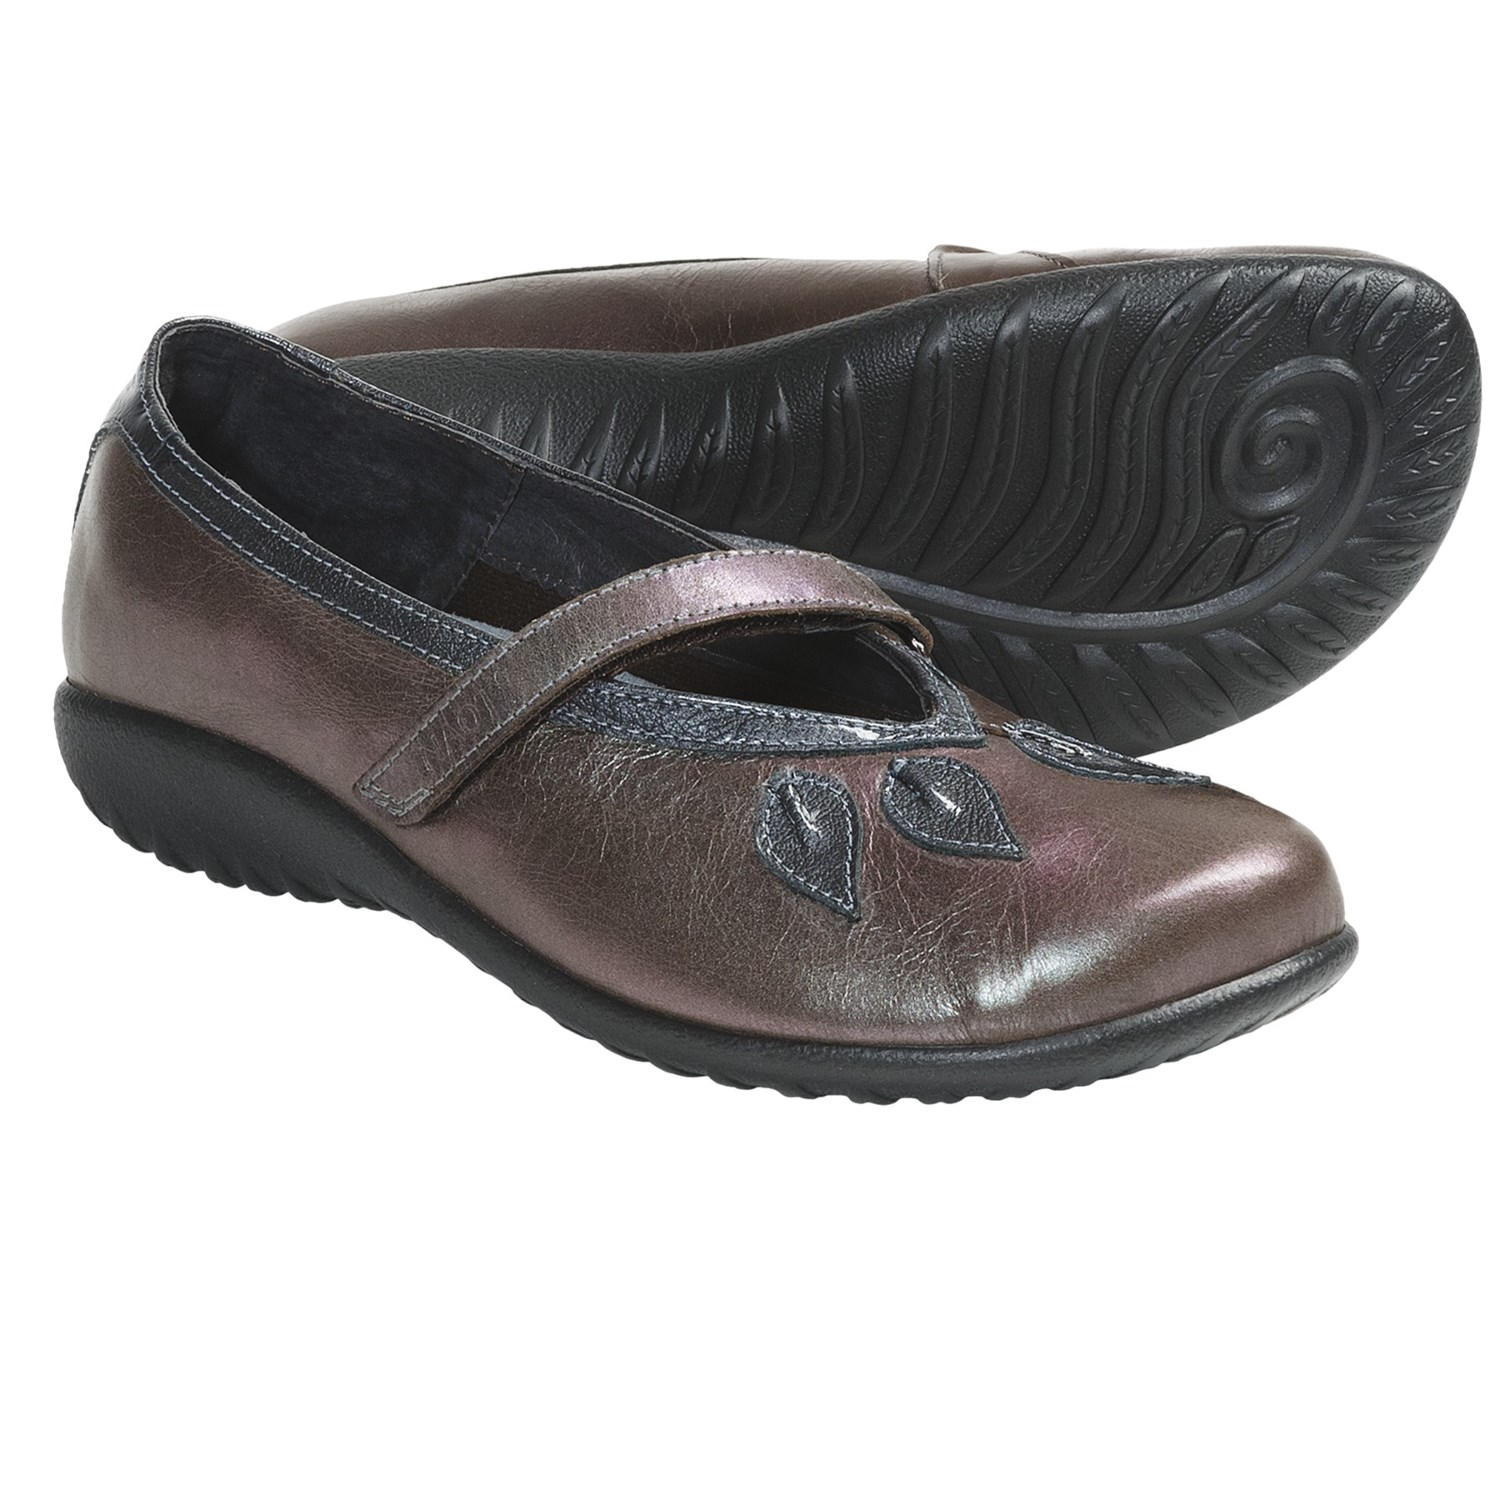 Naot Women's Chianti Sandals in Black Madras Leather